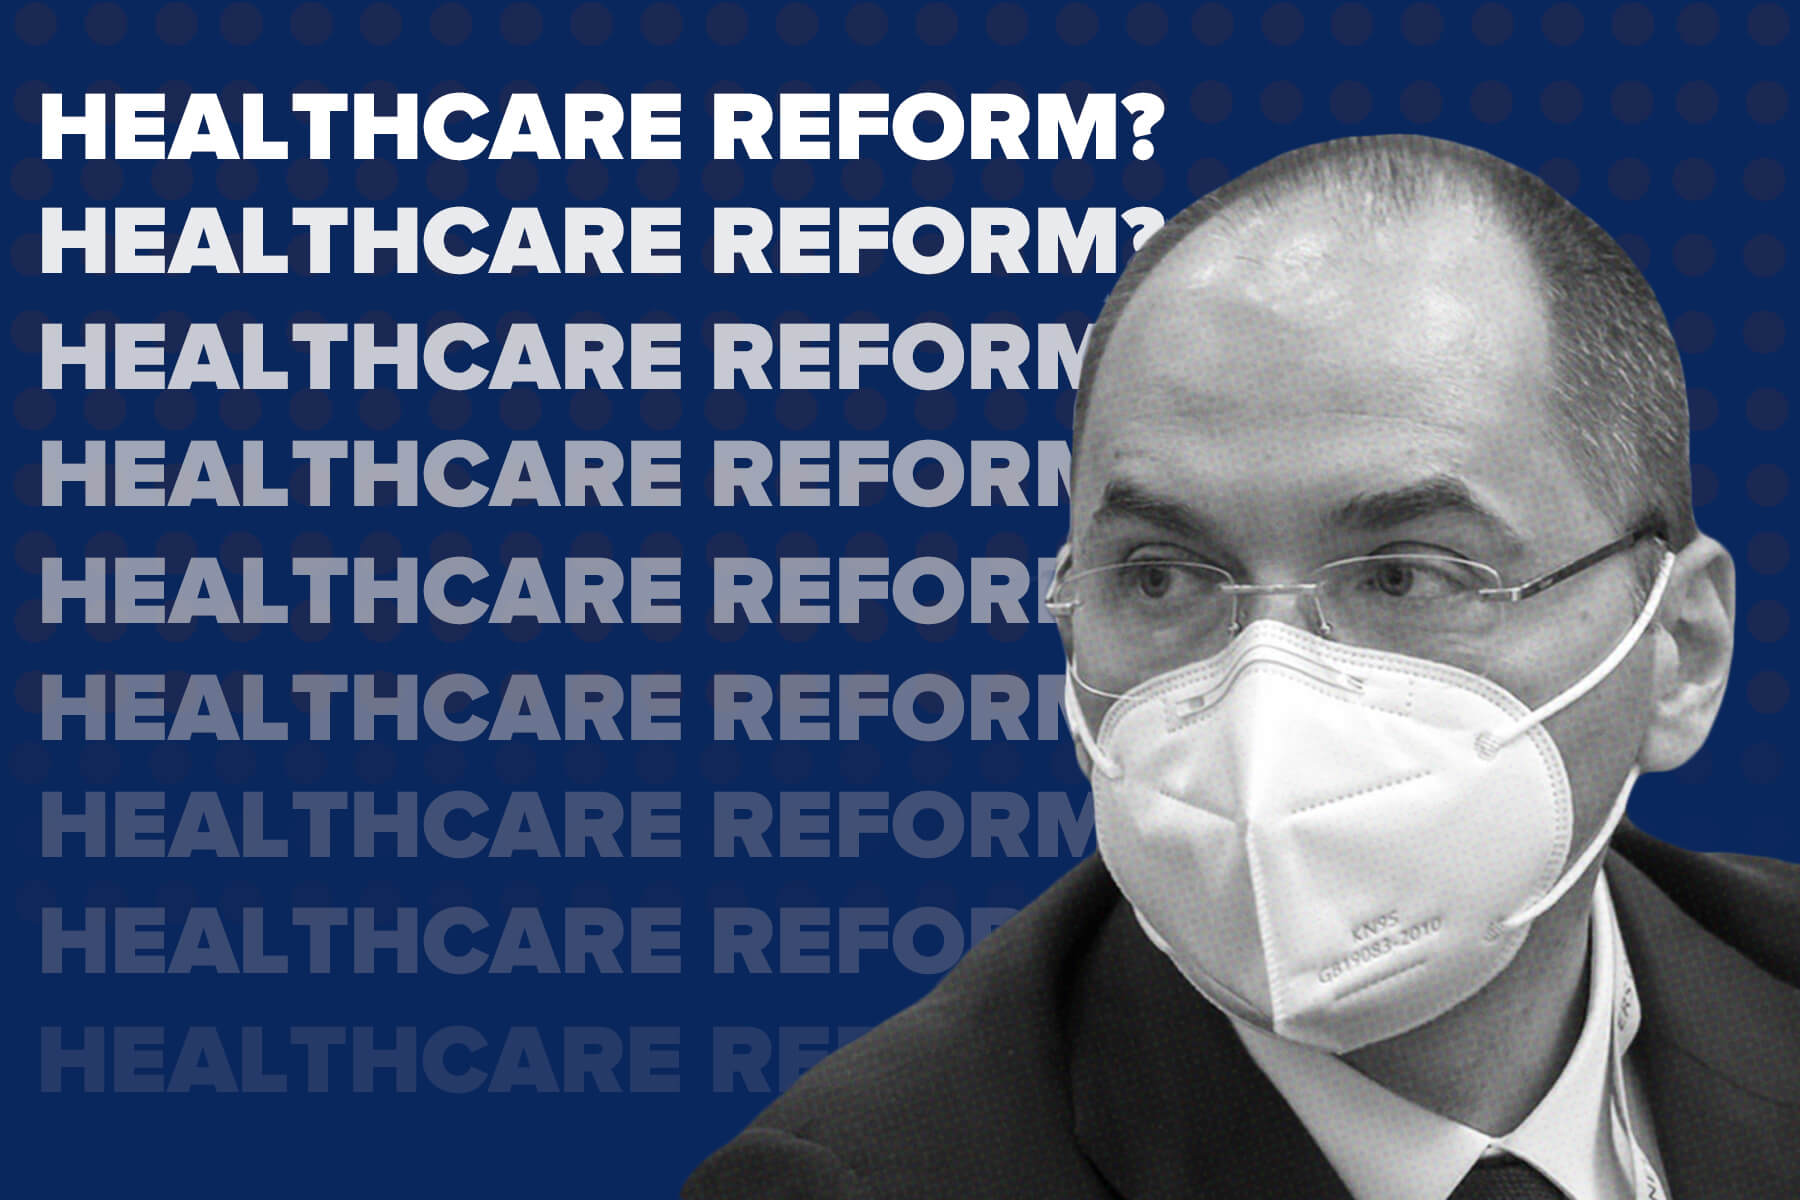 Ingenuine Medical Reform. Part One. The Minister's Manipulations